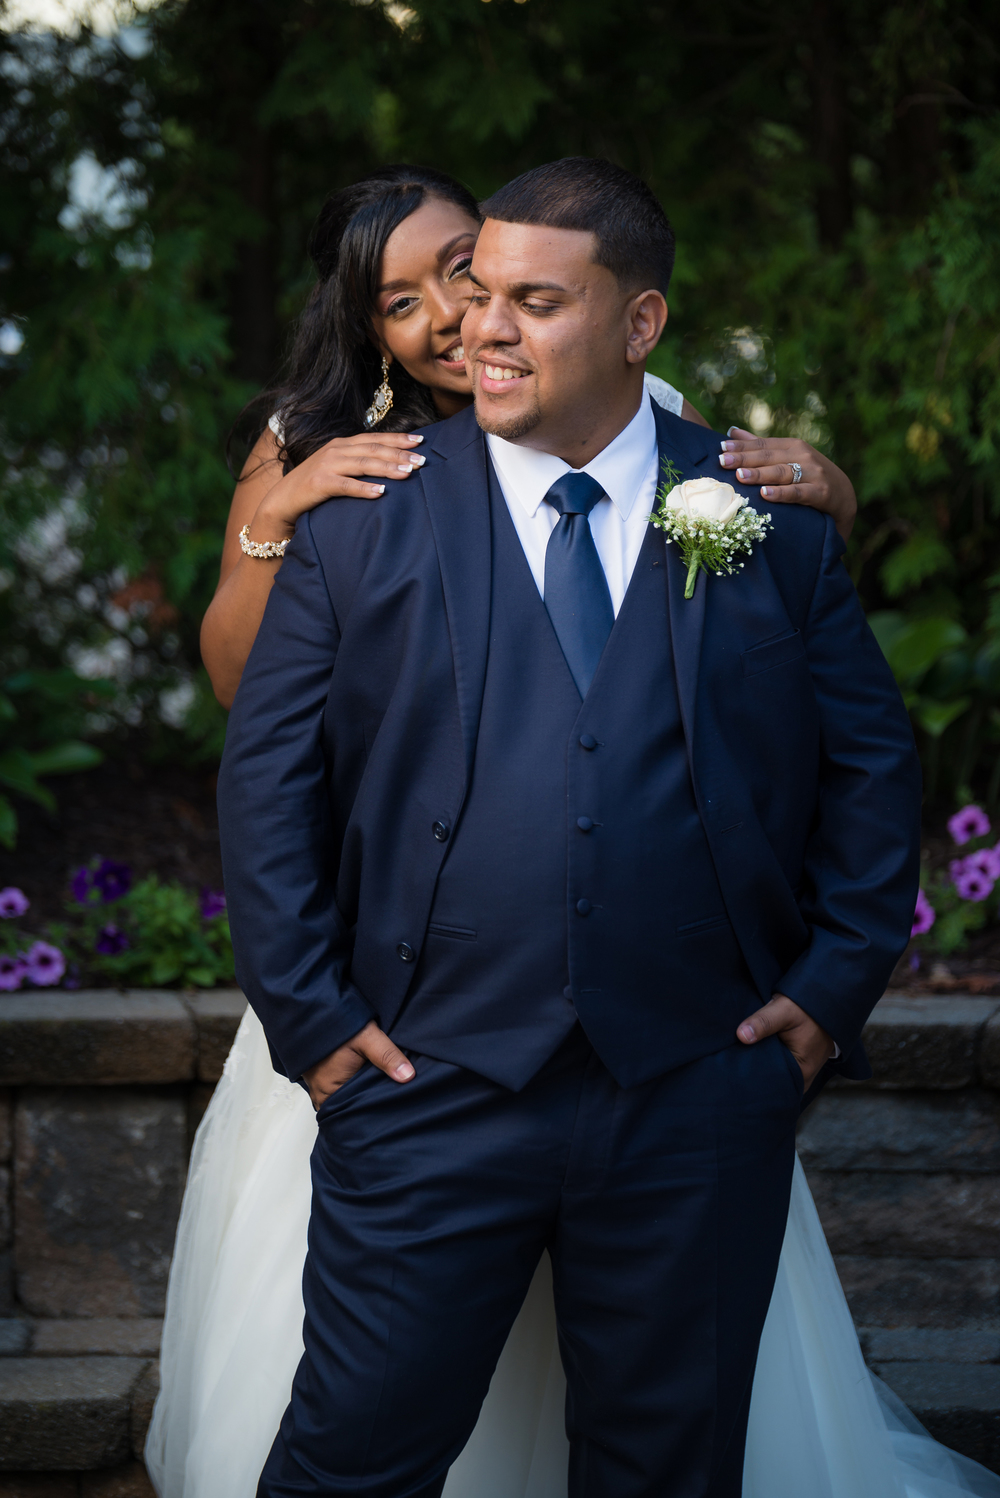 Isela-Josh-Wedding-Garcia-Photography-4274.jpg